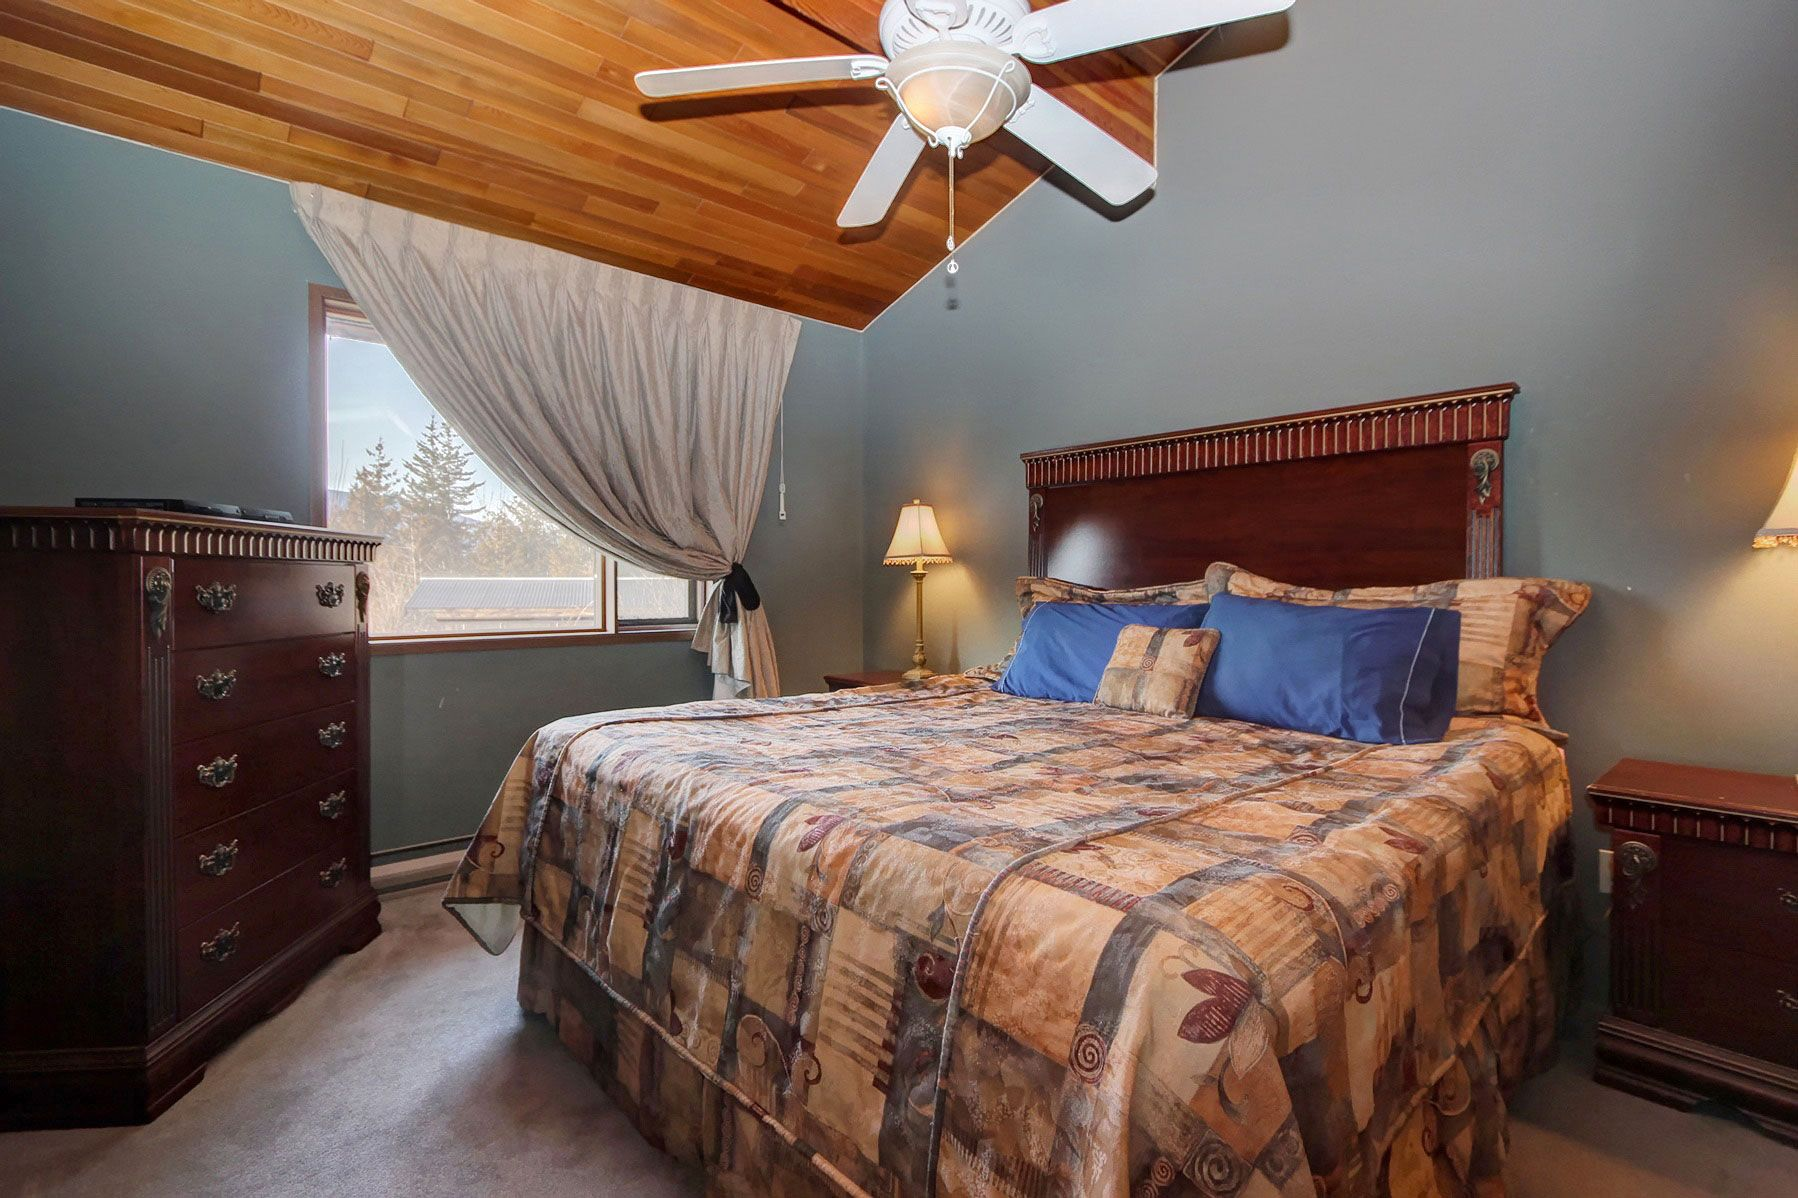 Photo 23: Photos: 1350 Trans Canada Highway in Sorrento: House for sale : MLS®# 10225818